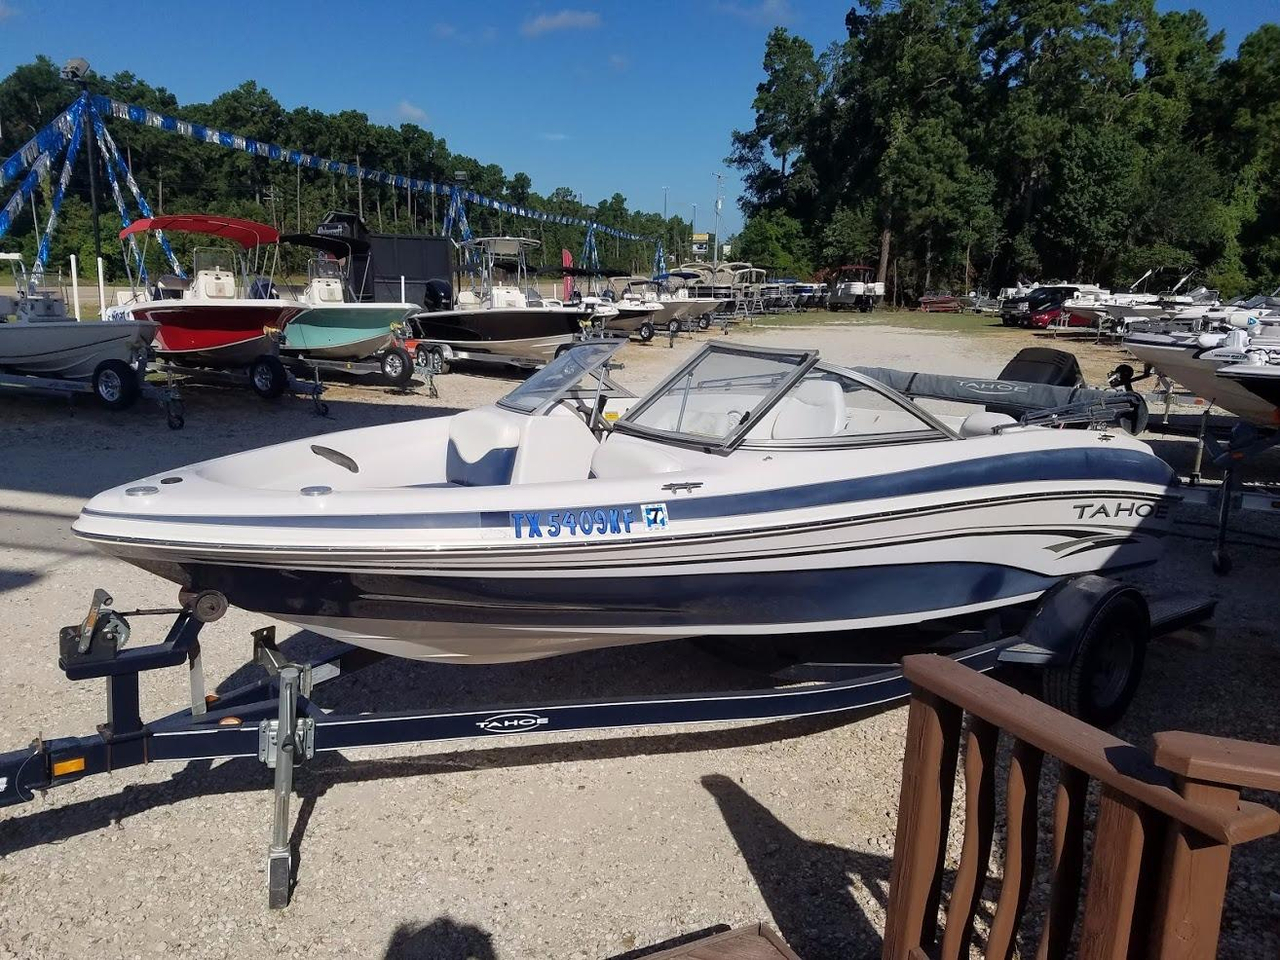 2005 used tahoe q4 sport fish ski and fish boat for sale for Tahoe sport fishing